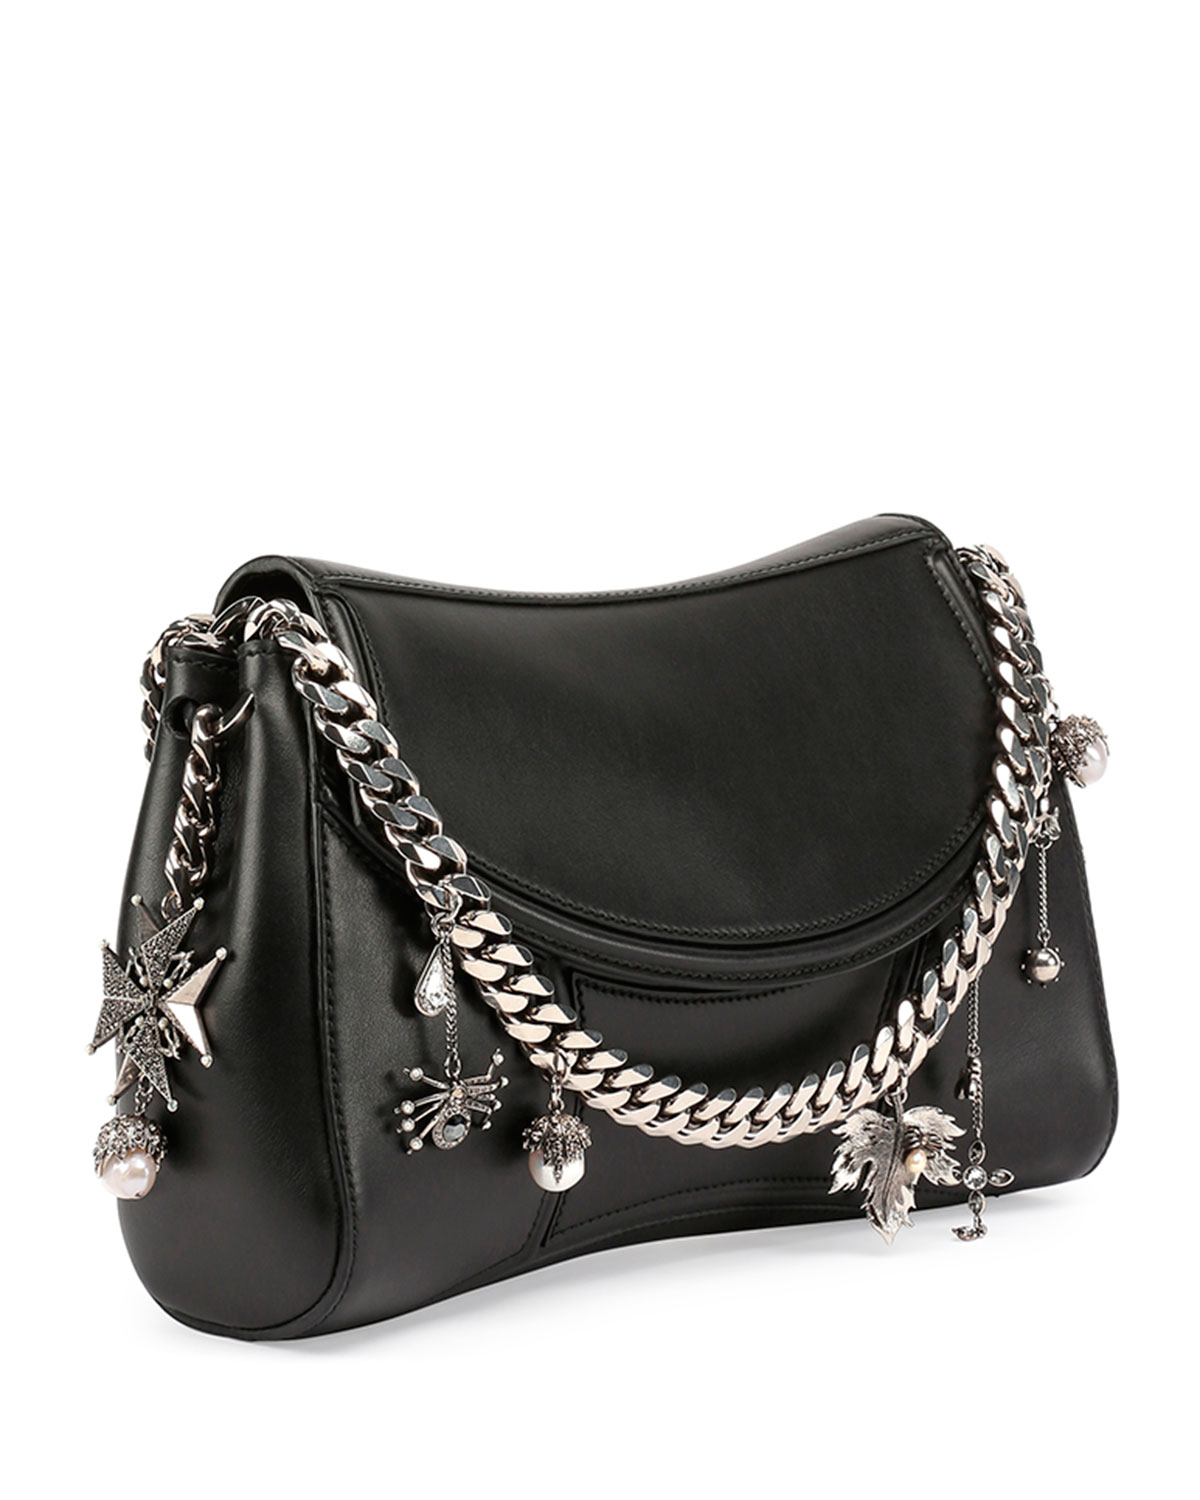 Alexander mcqueen Medallion Leather Chain-strap Shoulder Bag in ...